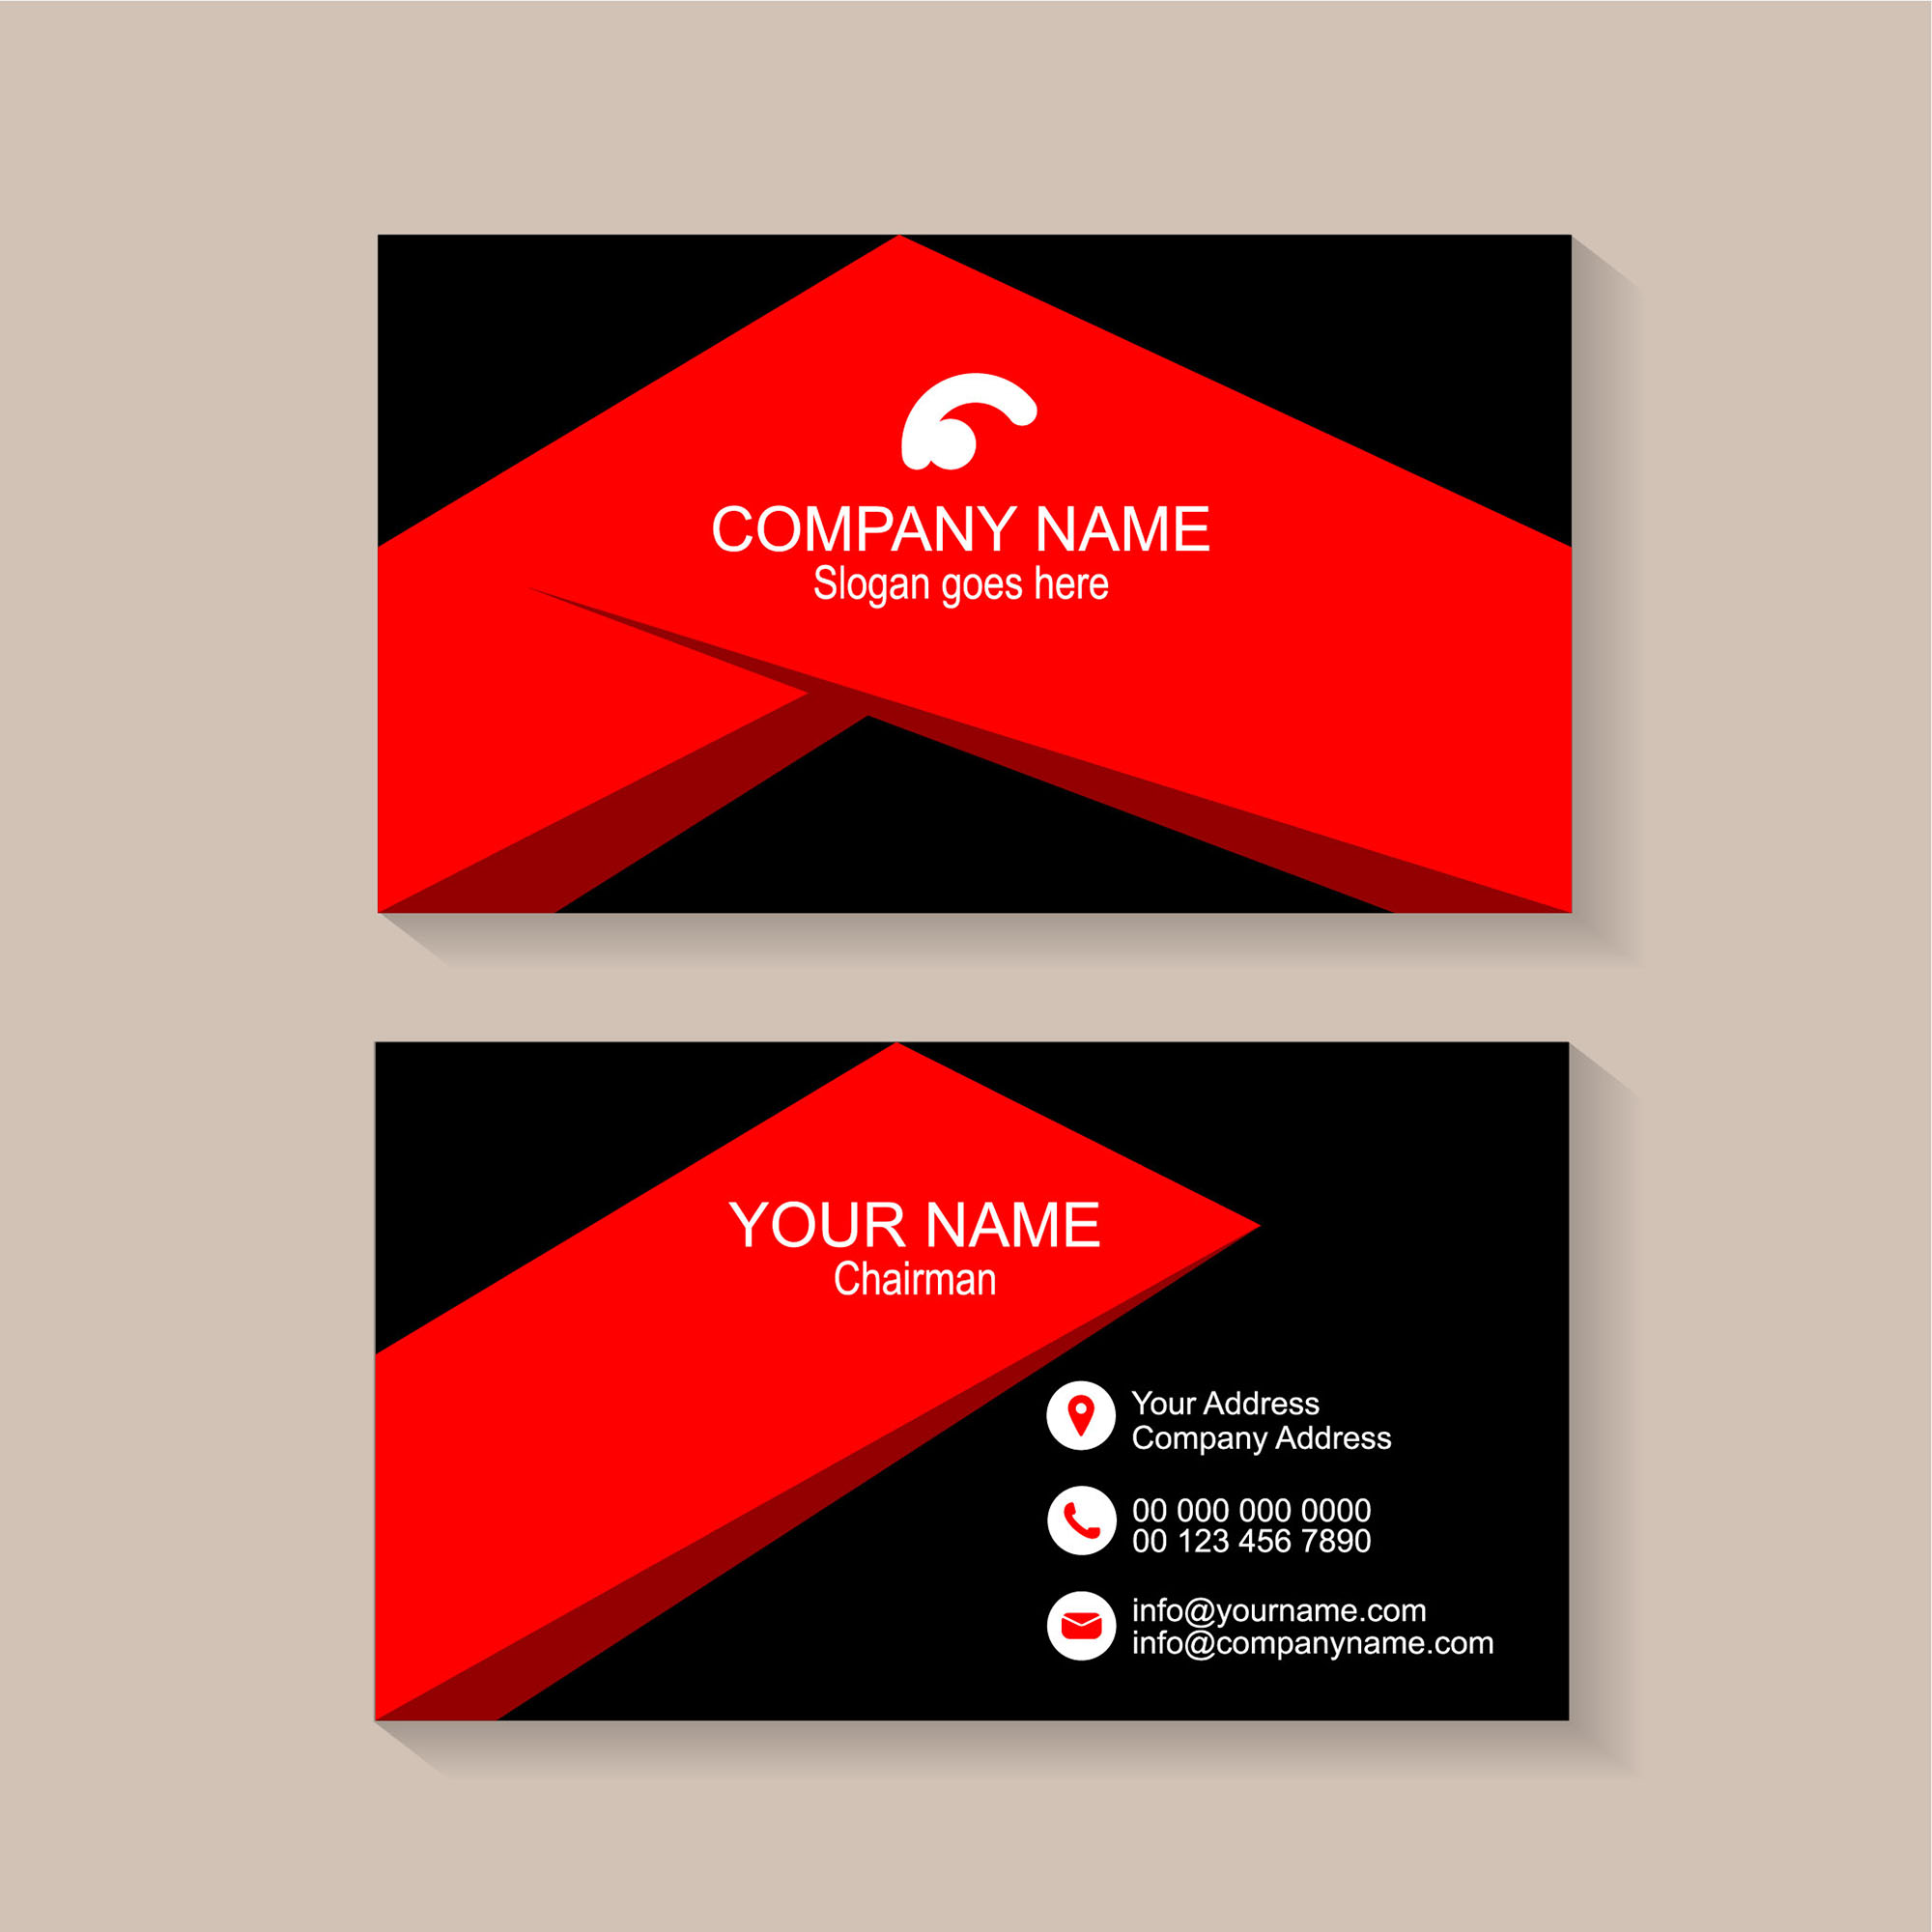 Business card template design free download wisxi business card business cards business card design business card template design templates fbccfo